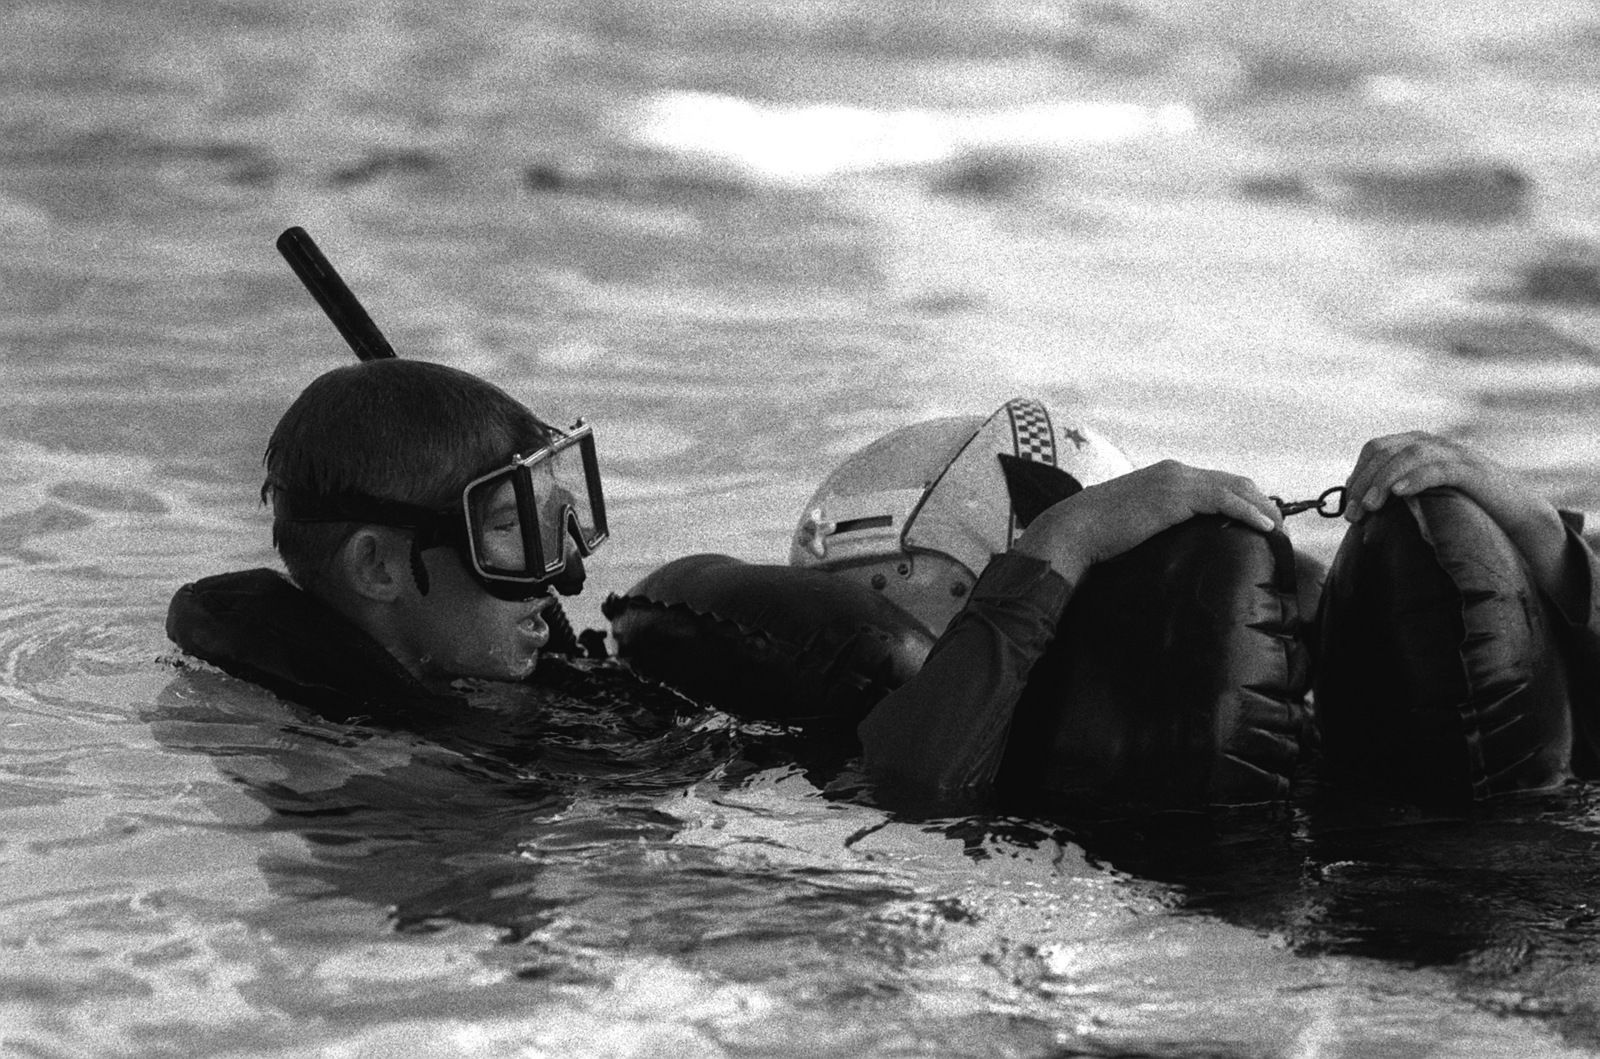 A student comes to the aid of a downed aviator during a simulated rescue, part of the twenty-day, intensive training course at the Navy Rescue Swimmer School. Exact Date Shot Unknown